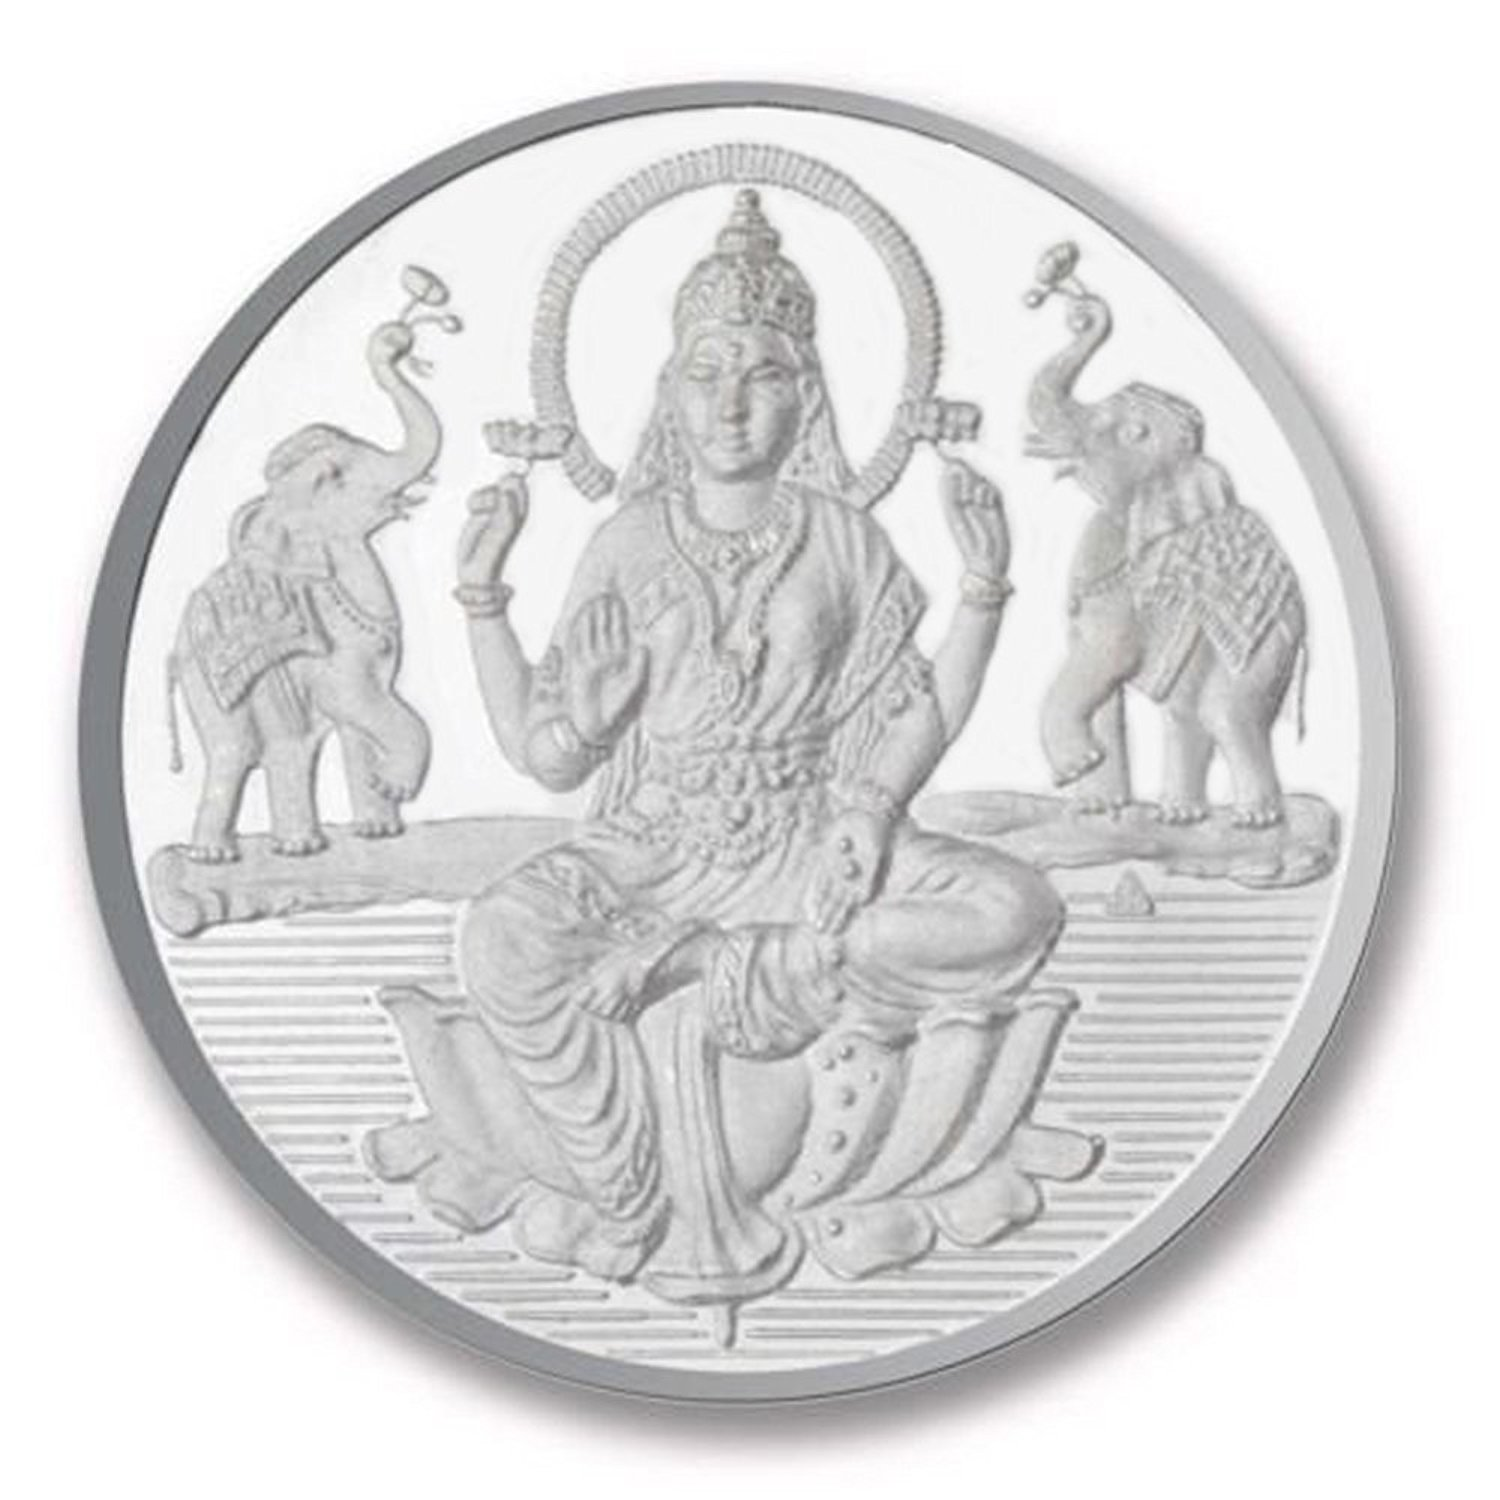 Silver Indian Wedding Gifts: Pure Silver Gift Items For Marriage (Indian Wedding) Below